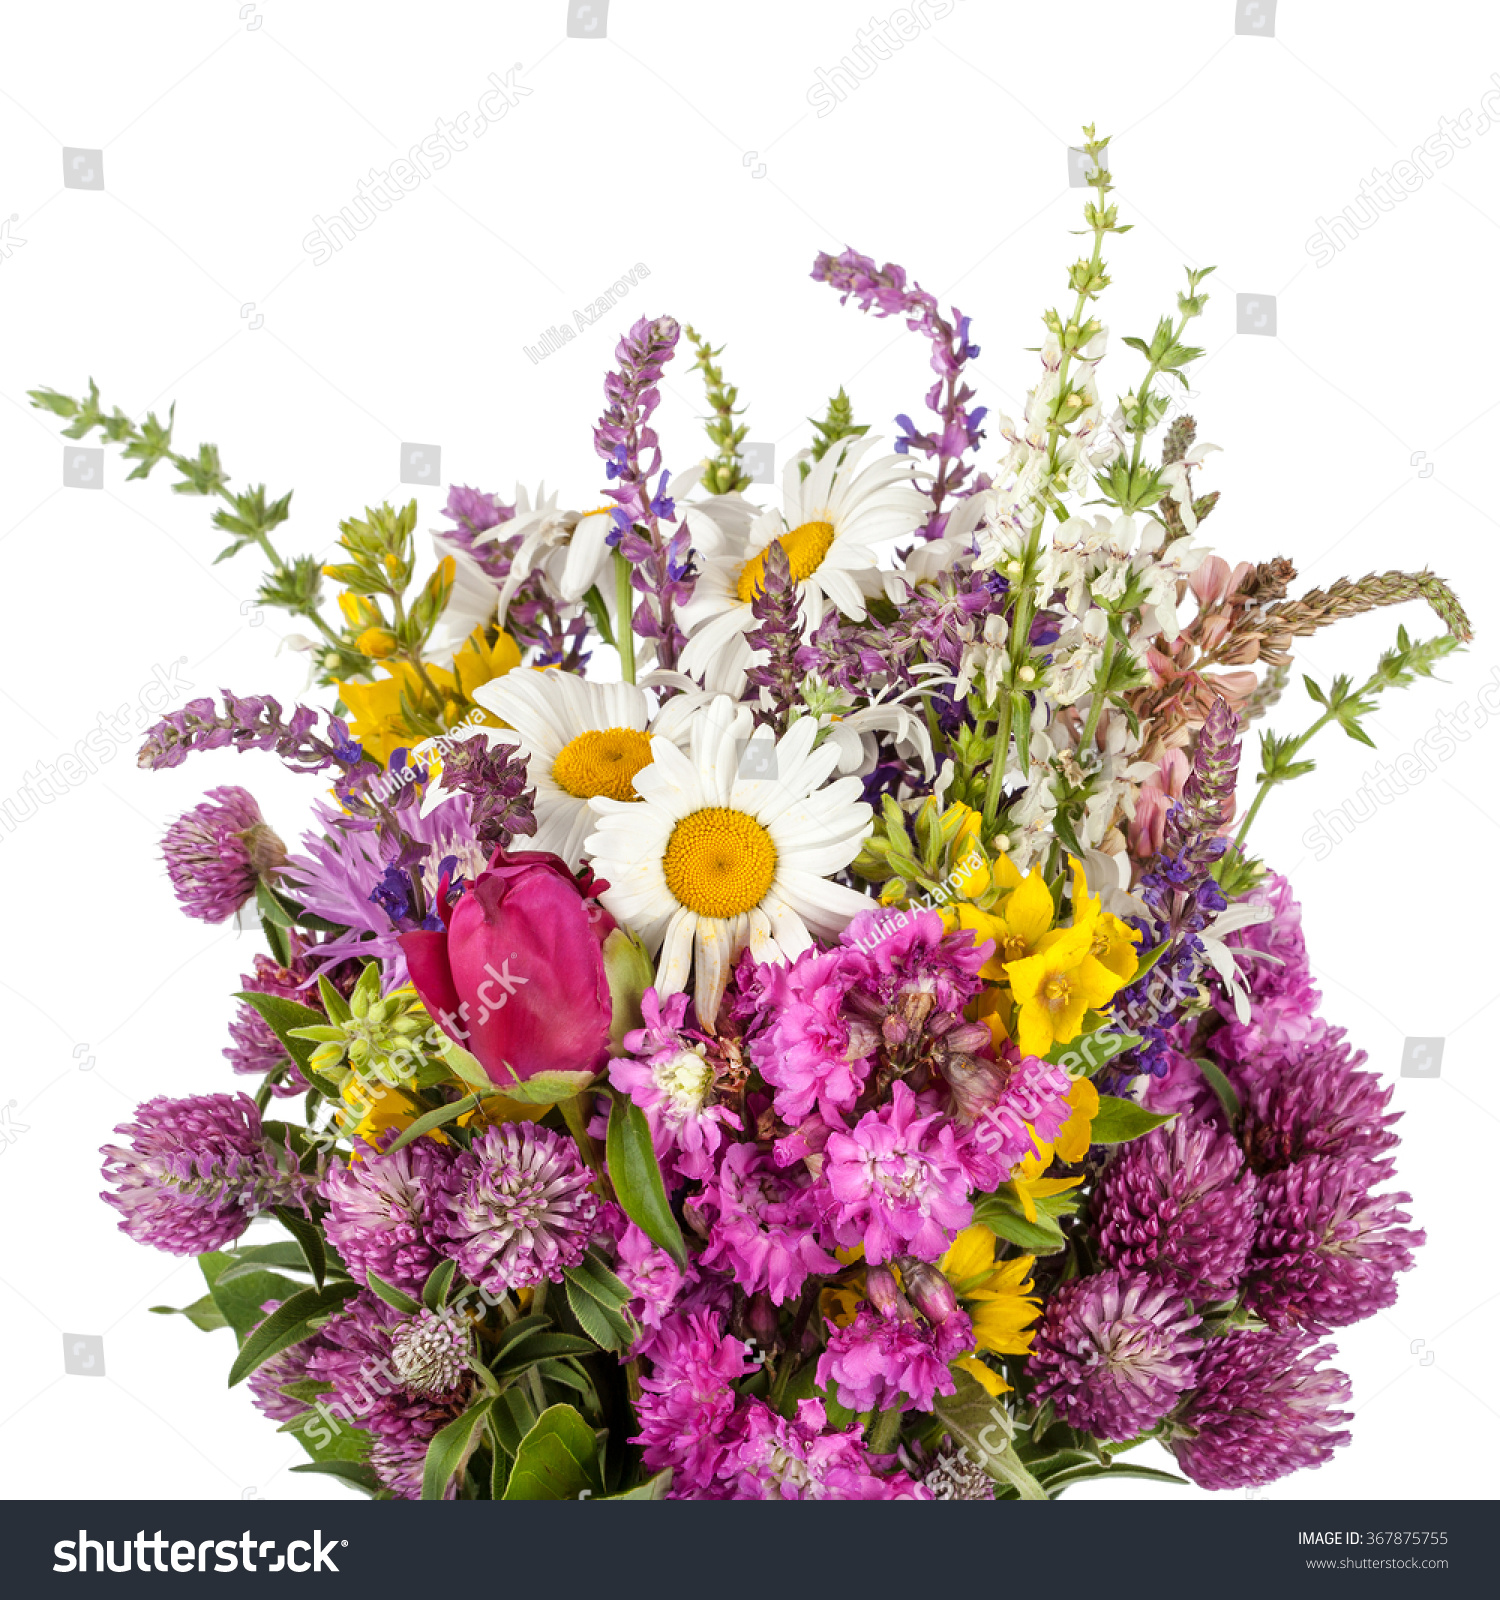 Beautiful wild flowers bouquet wildflowers stock photo edit now beautiful wild flowers bouquet wildflowers izmirmasajfo